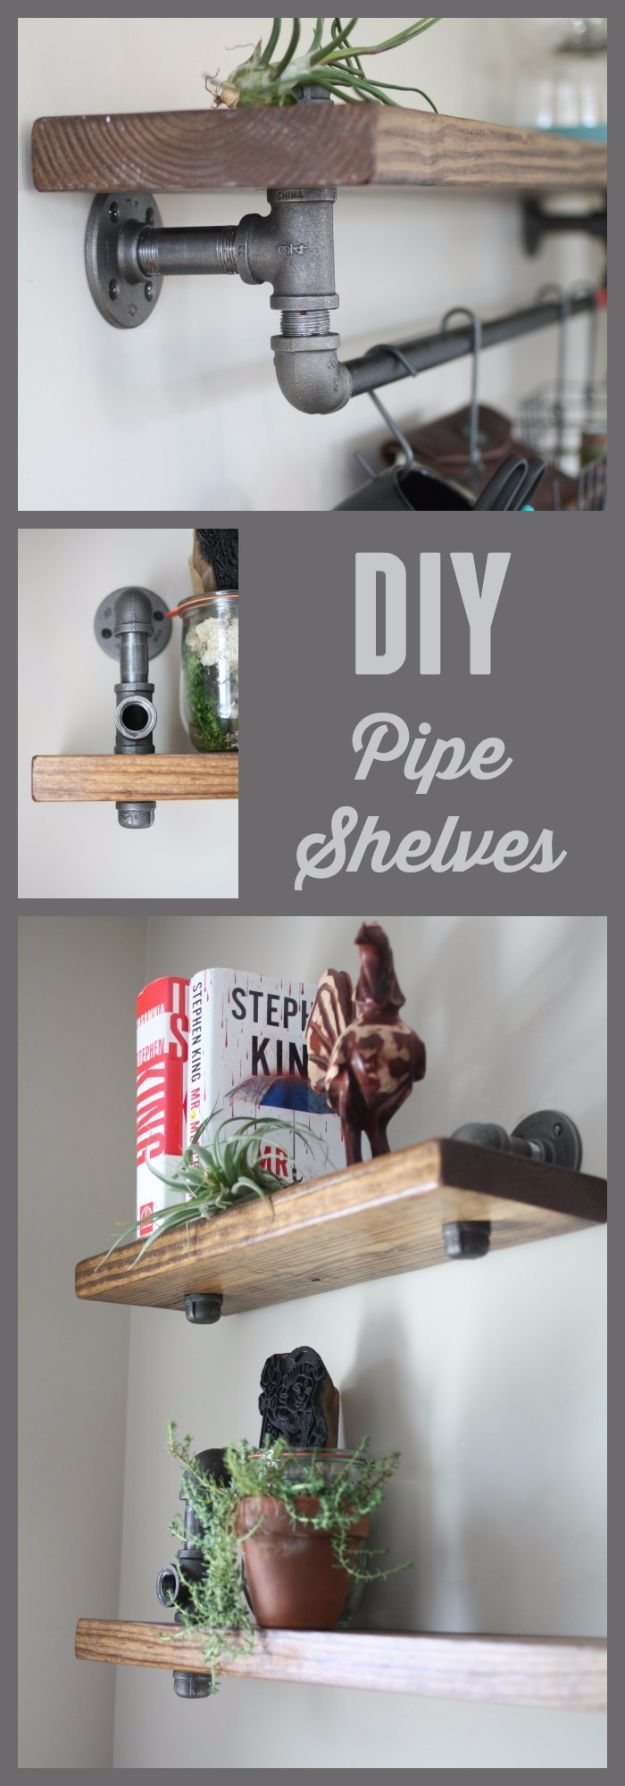 DIY Shelves and Do It Yourself Shelving Ideas - Industrial Pipe and Wood Bookshelves - Easy Step by Step Shelf Projects for Bedroom, Bathroom, Closet, Wall, Kitchen and Apartment. Floating Units, Rustic Pallet Looks and Simple Storage Plans http://diyjoy.com/diy-shelving-projects